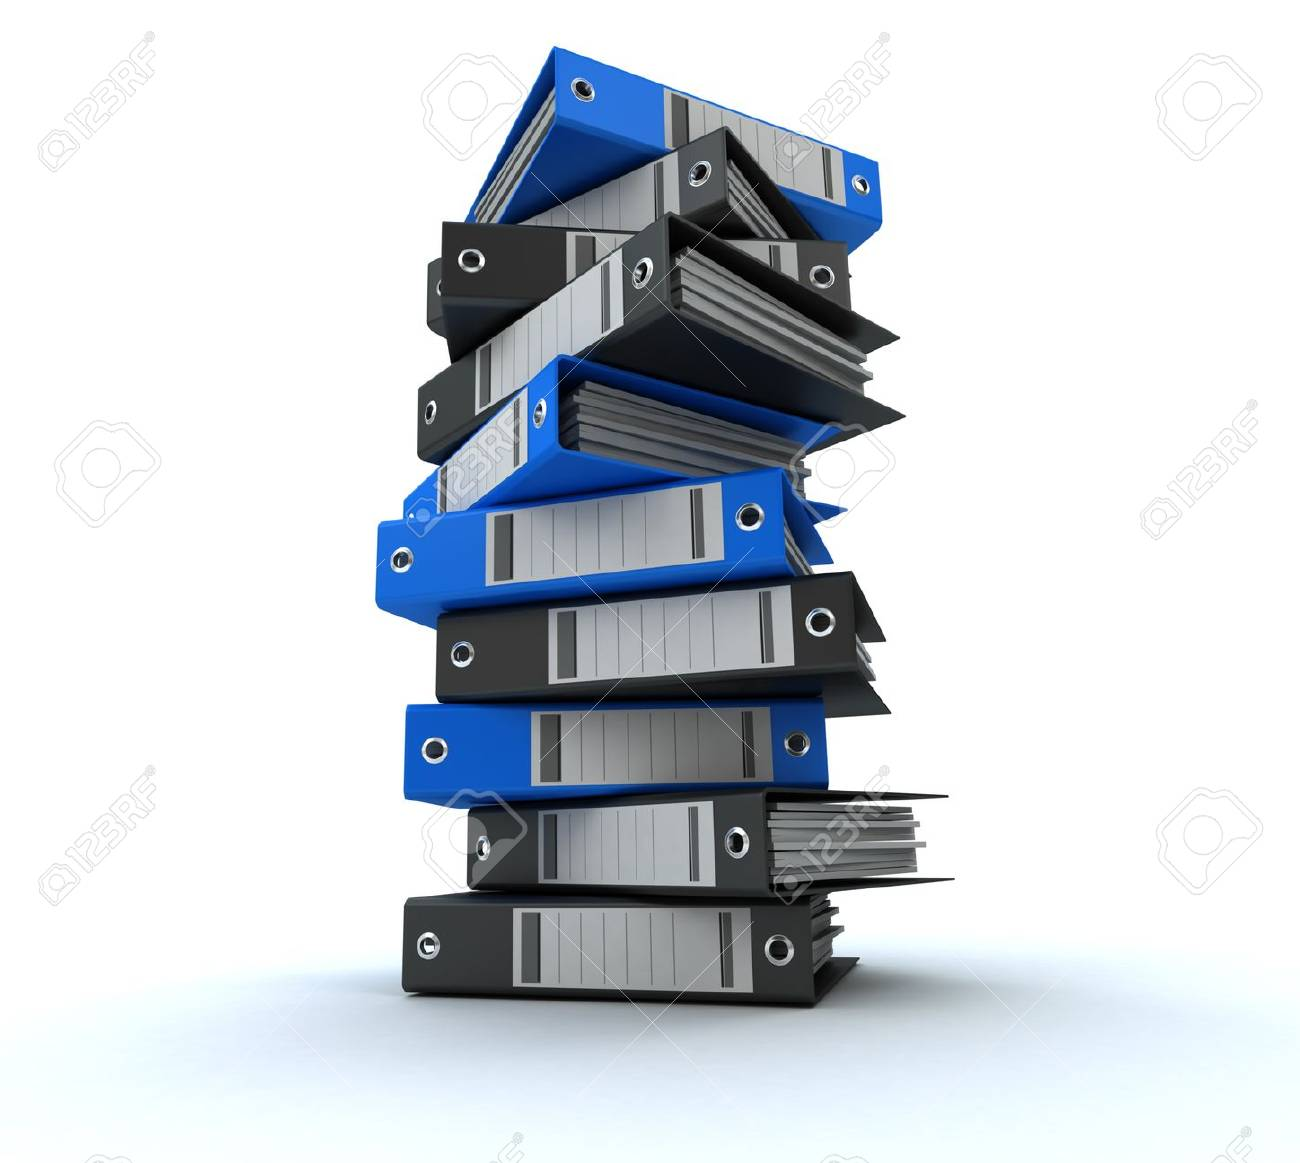 3D rendering of a pile of office ring binders Stock Photo - 13253498